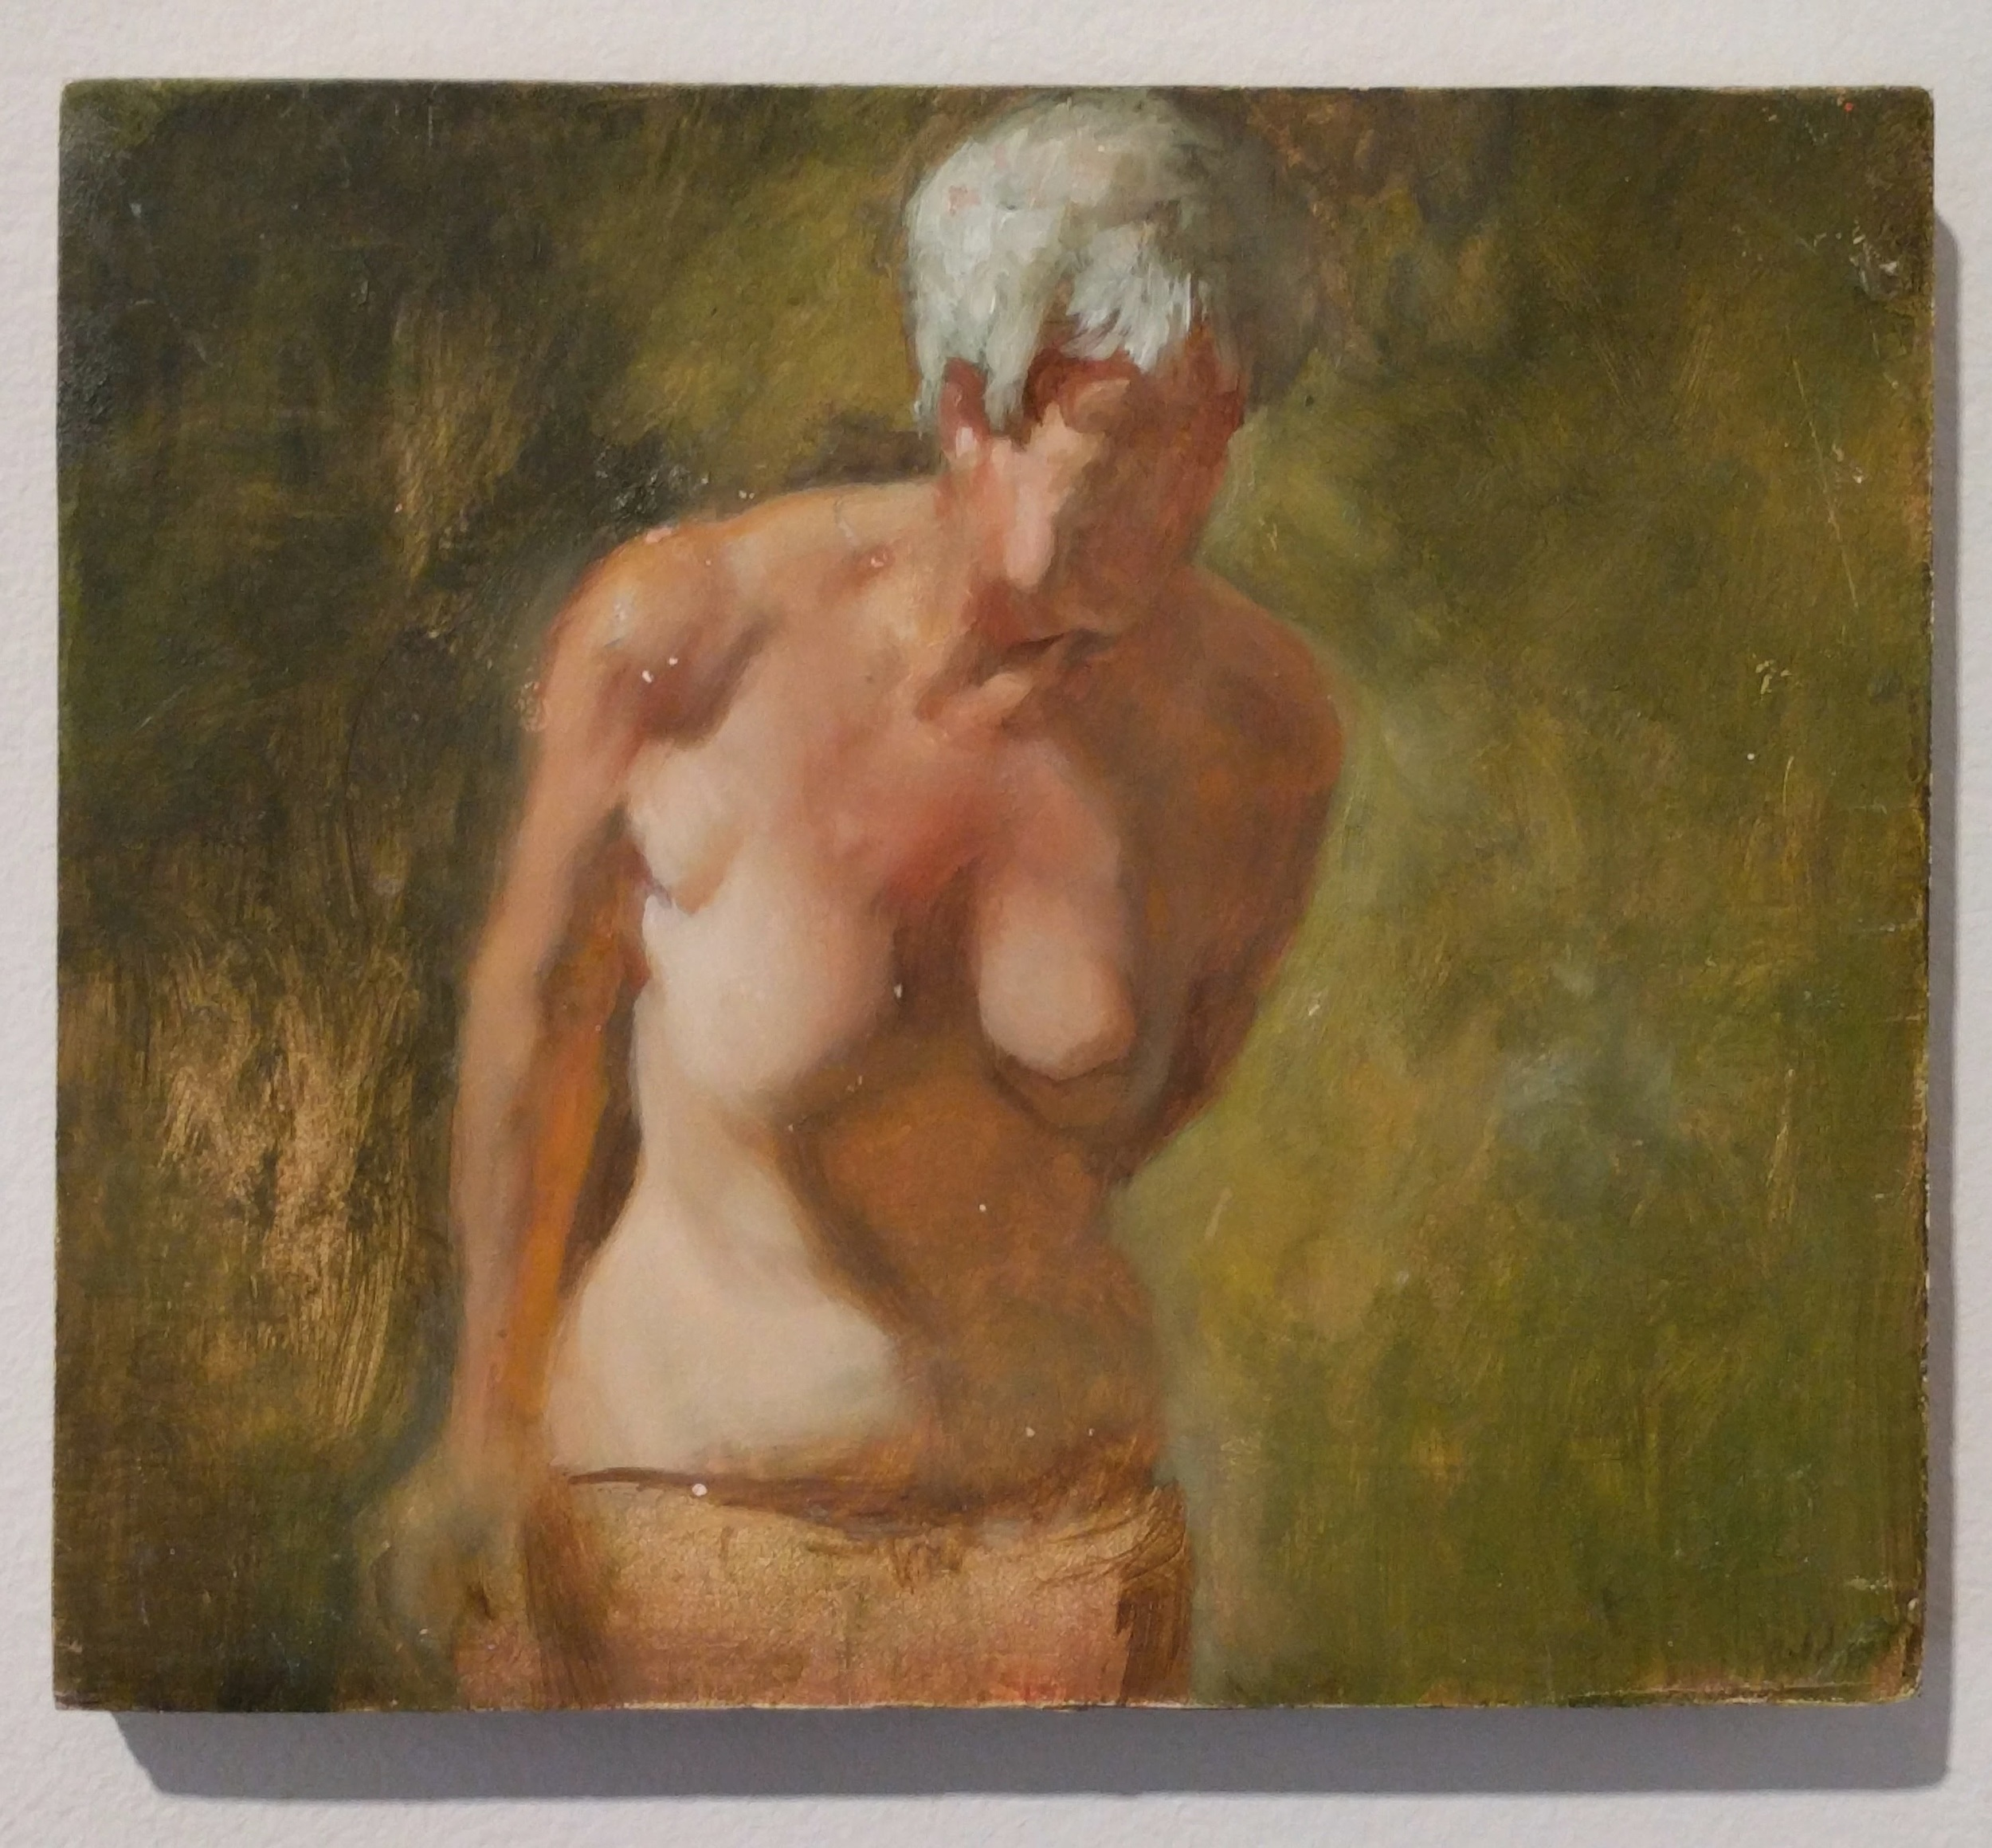 """William Doebele """"Lady on Green"""" 2013 oil on wood, 5 x 6 in."""